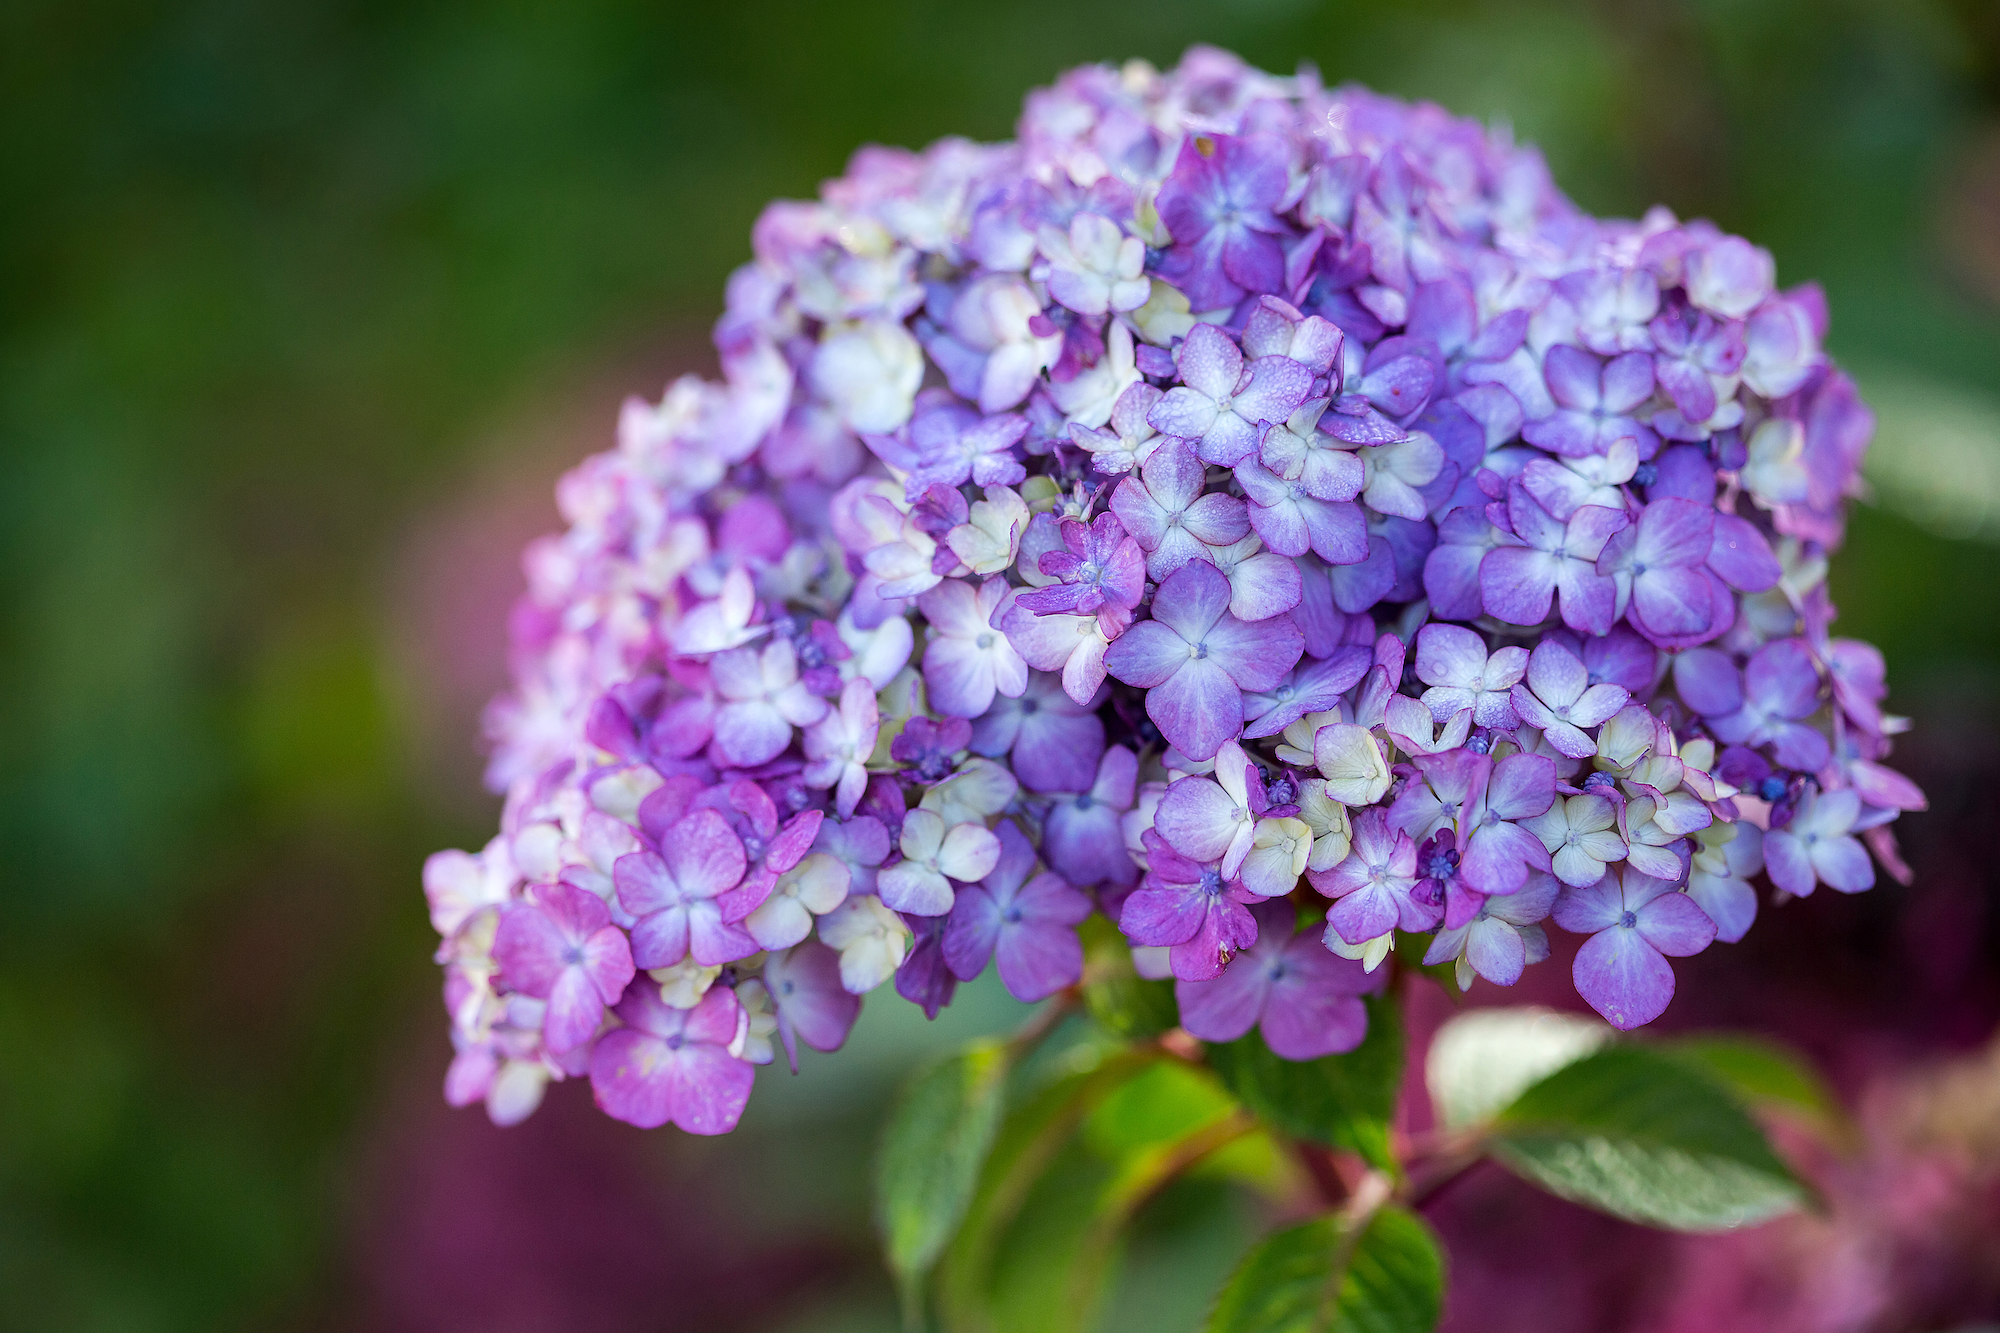 Endless Summer BloomStruck Hydrangea with purple bloom